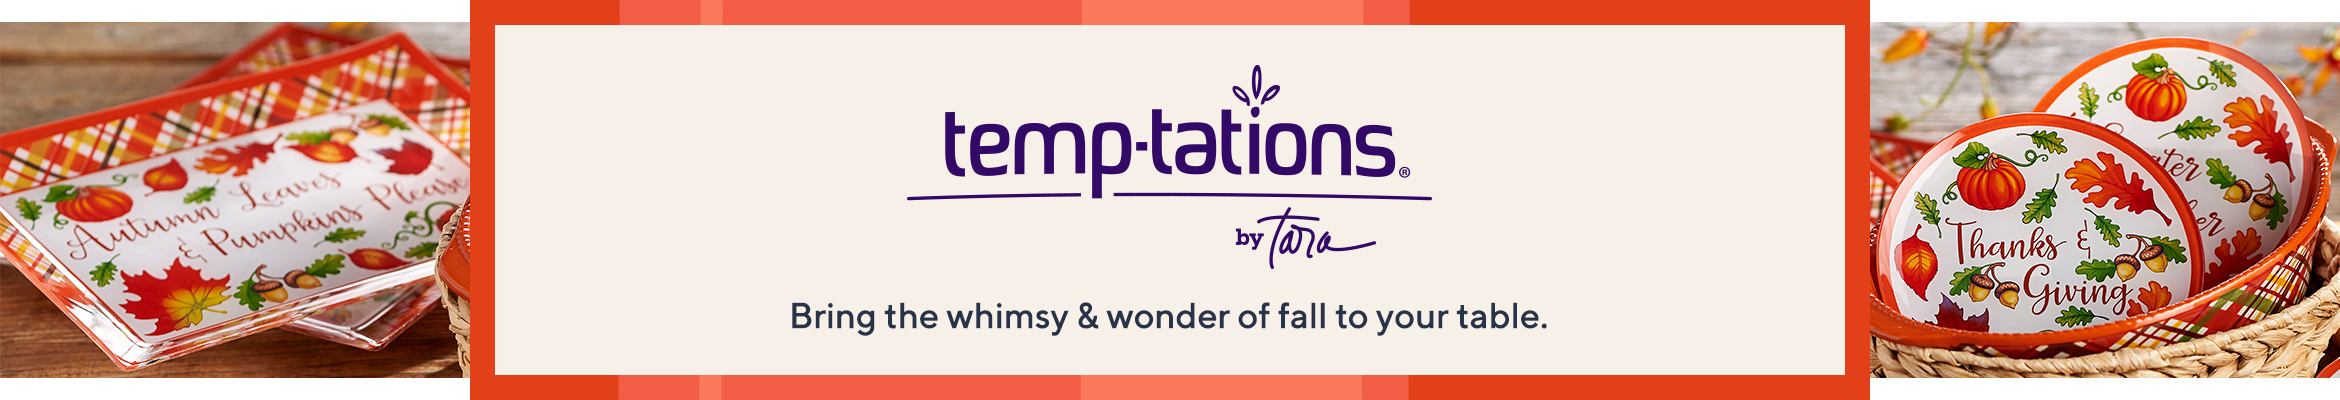 Temp-tations® - Bring the whimsy & wonder of fall to your table.